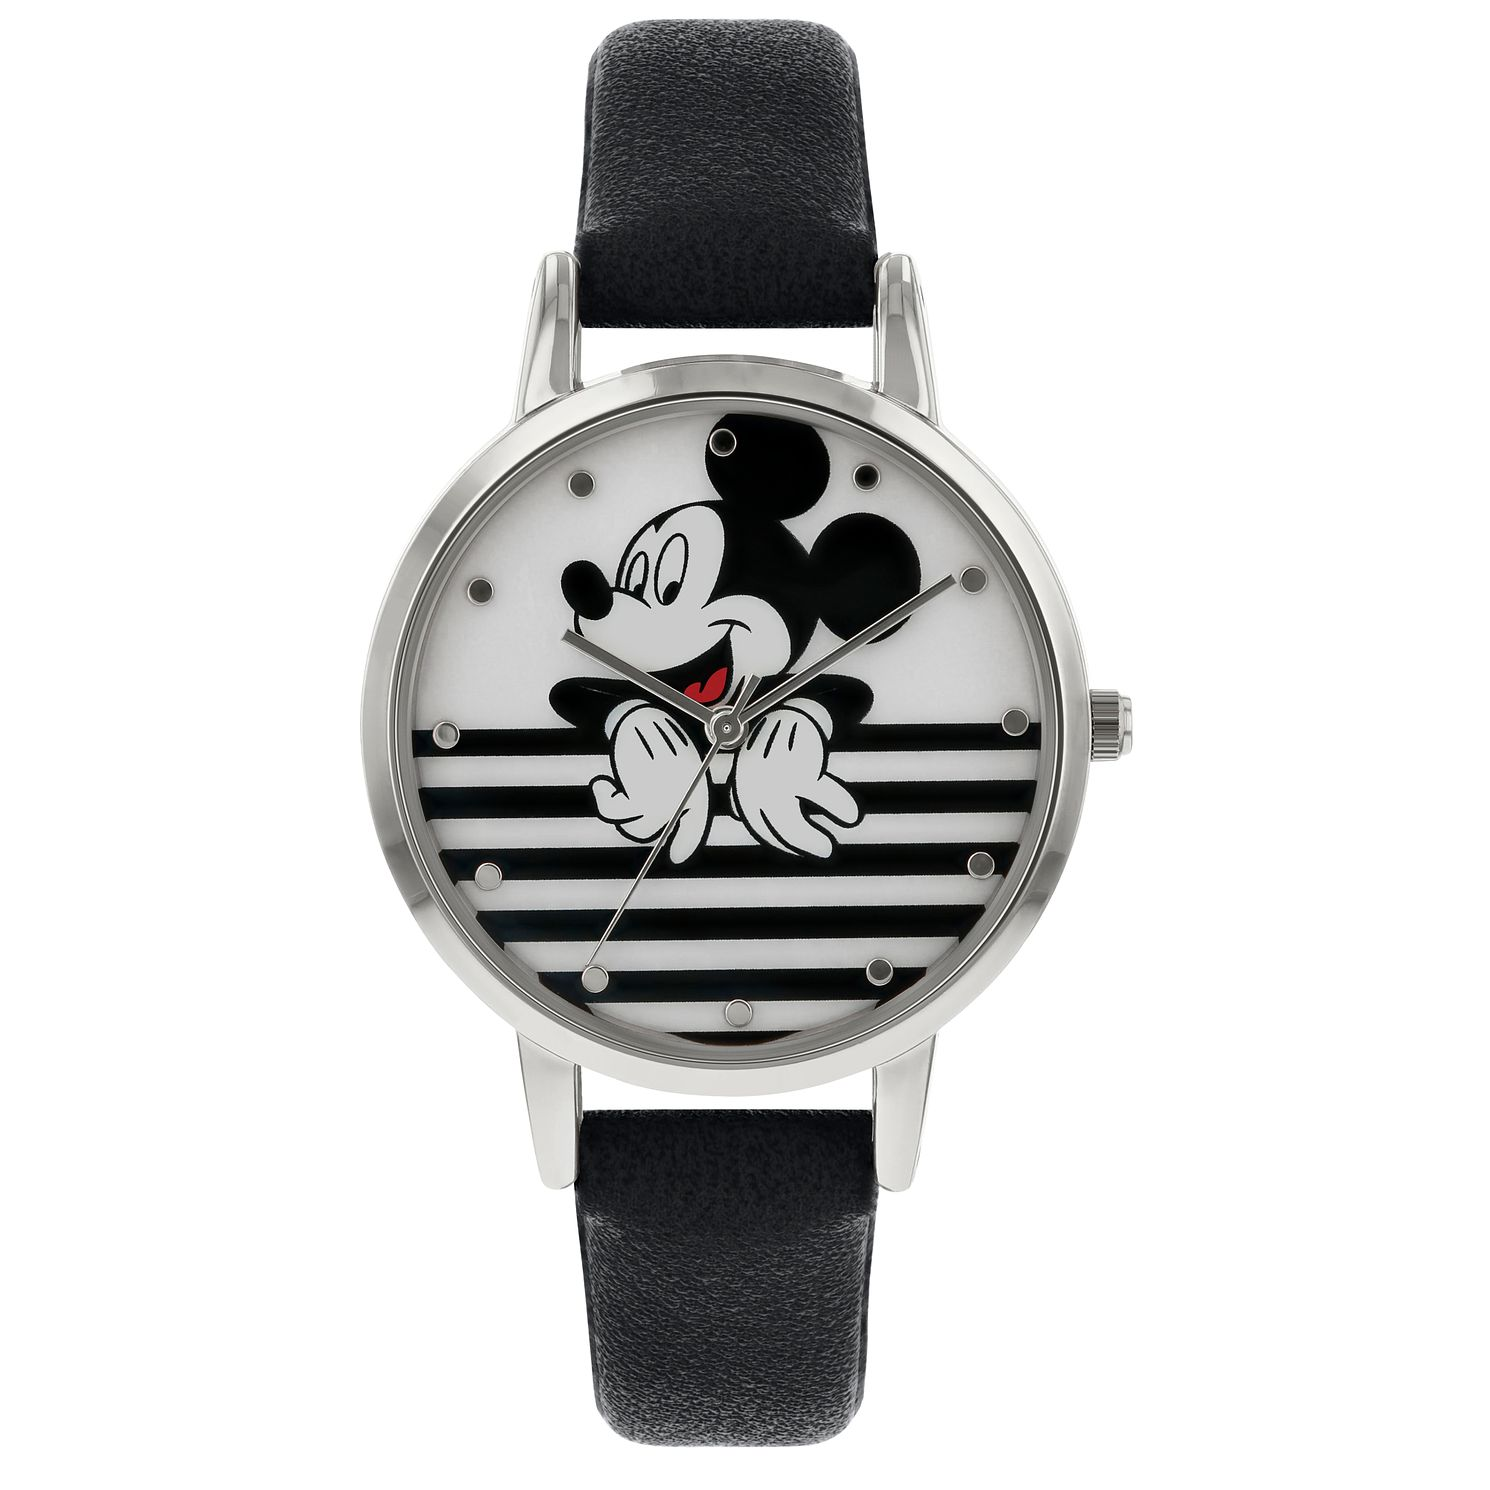 Disney Mickey Mouse Adults' Black Leather Strap Watch - Product number 8068283